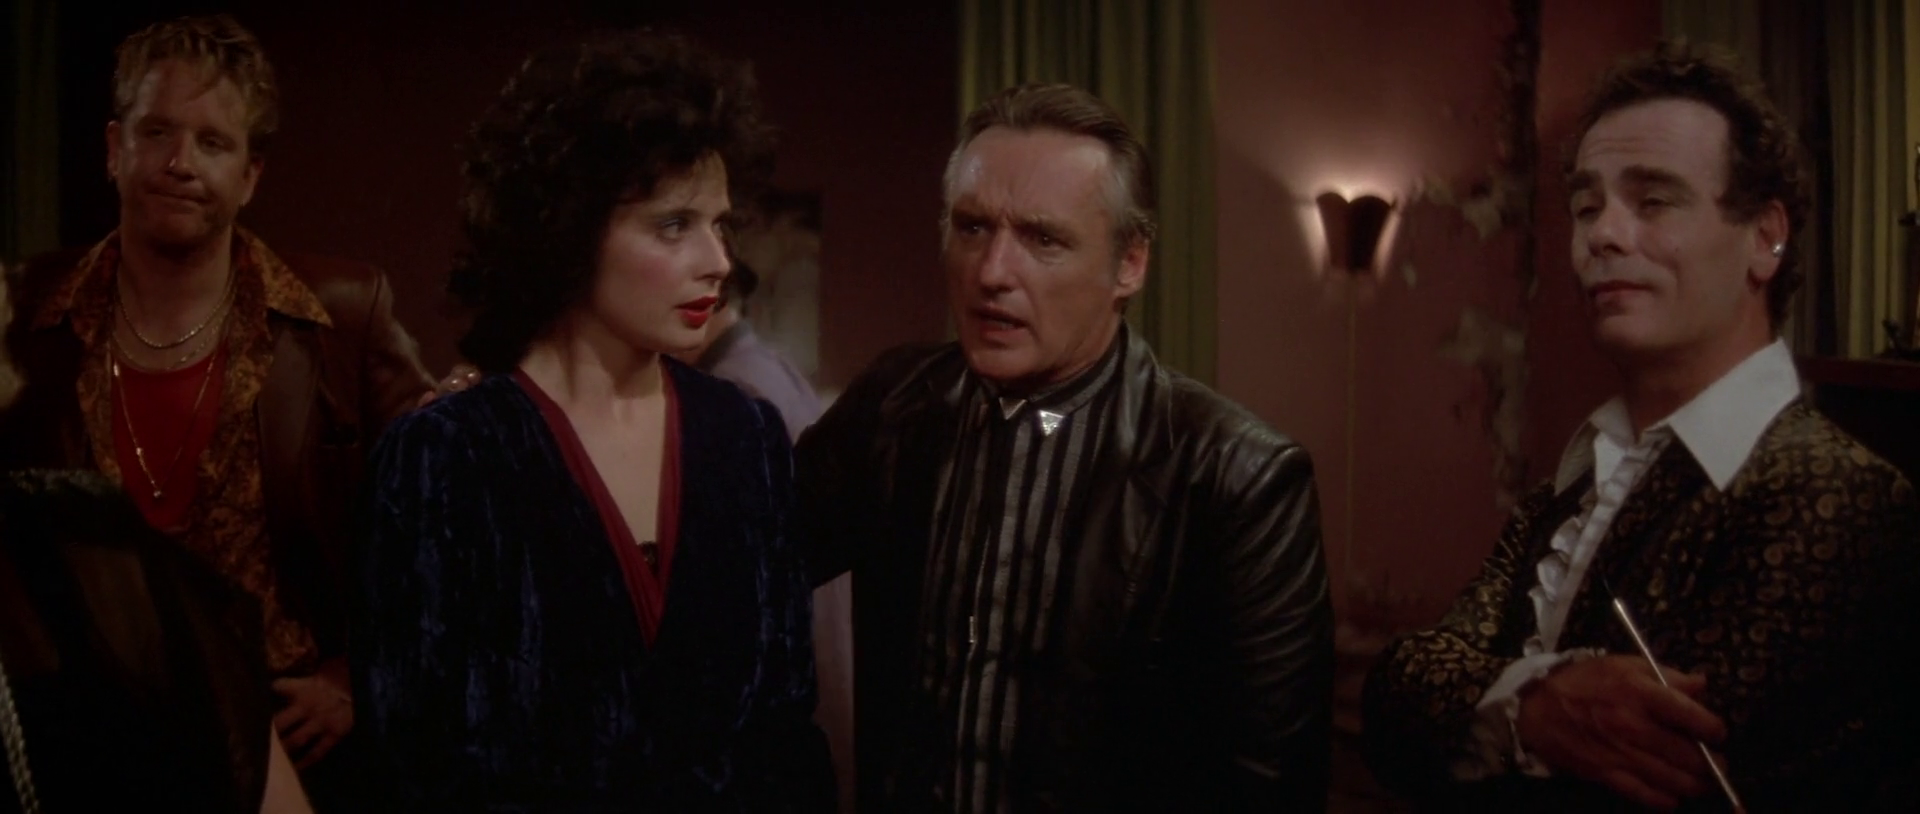 """an analysis of blue velvet by david lynchs The result was blue velvet, a critically acclaimed neo-noir that  at the height of  molly ringwald's '80s superstar fame, she was reportedly lynch's first choice for  sandy  lynch has even said, """"helen mirren really helped me on that script   rossellini once explained, """"i was fascinated by the way david."""